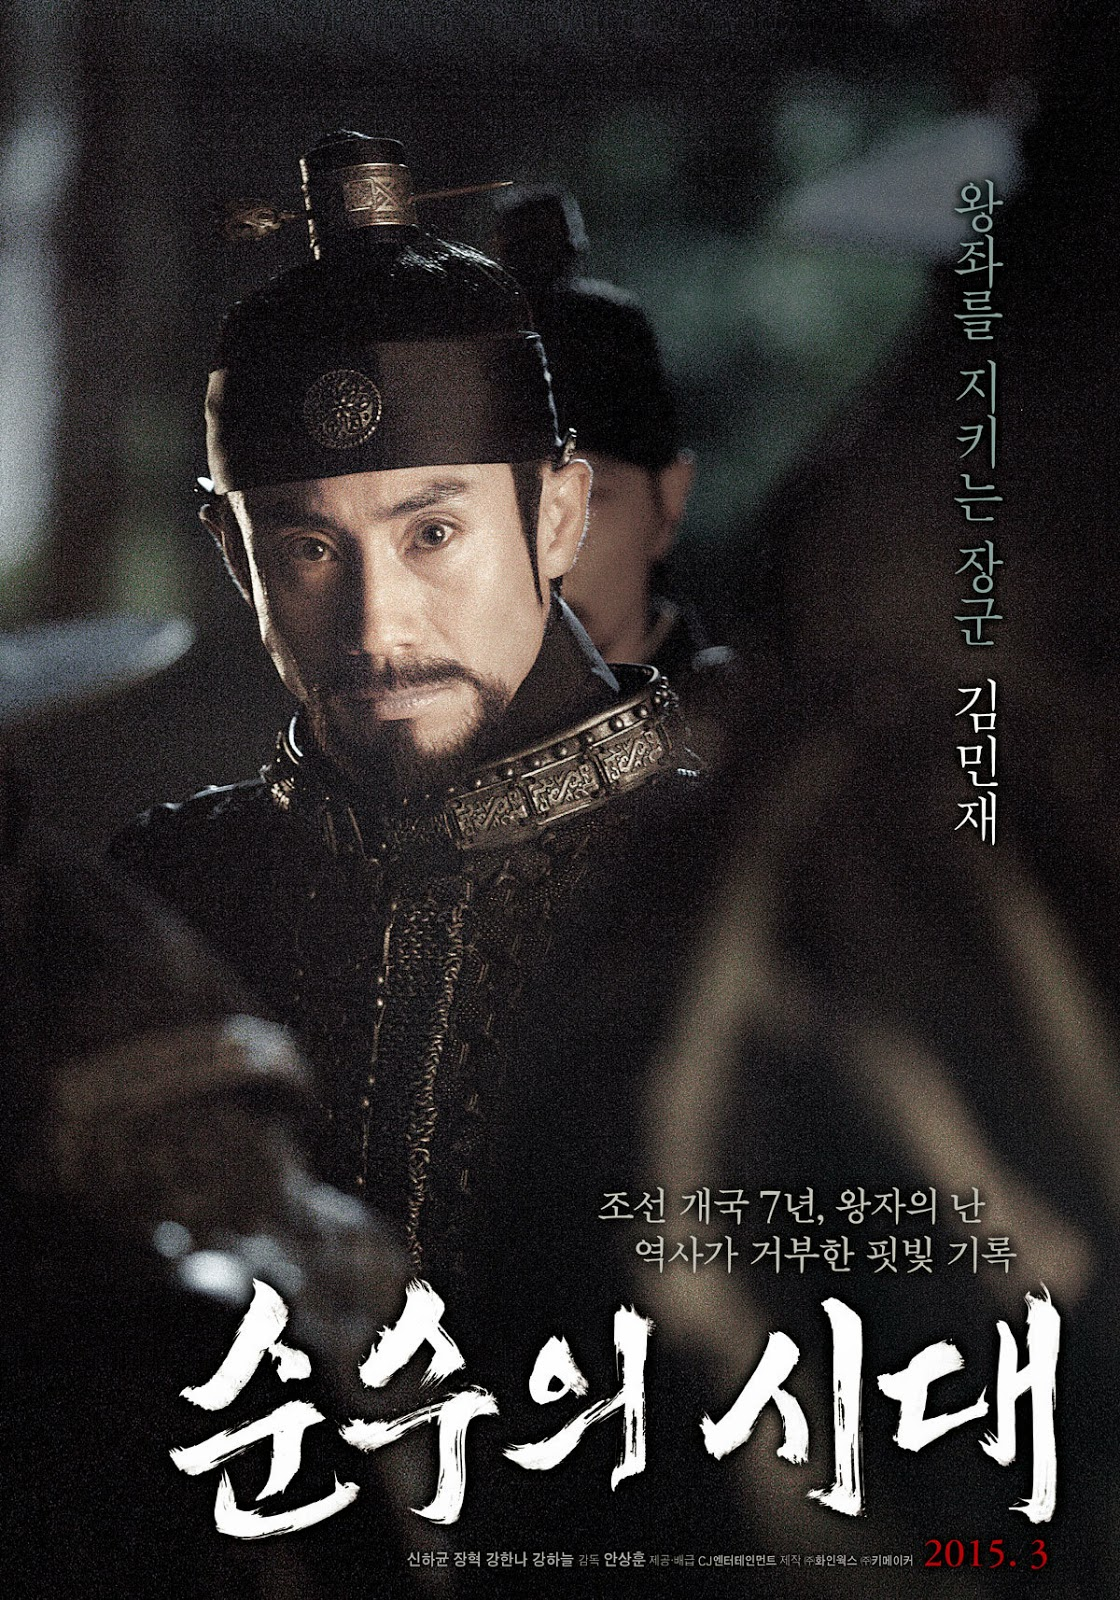 Modern Korean Cinema: Upcoming Releases - March